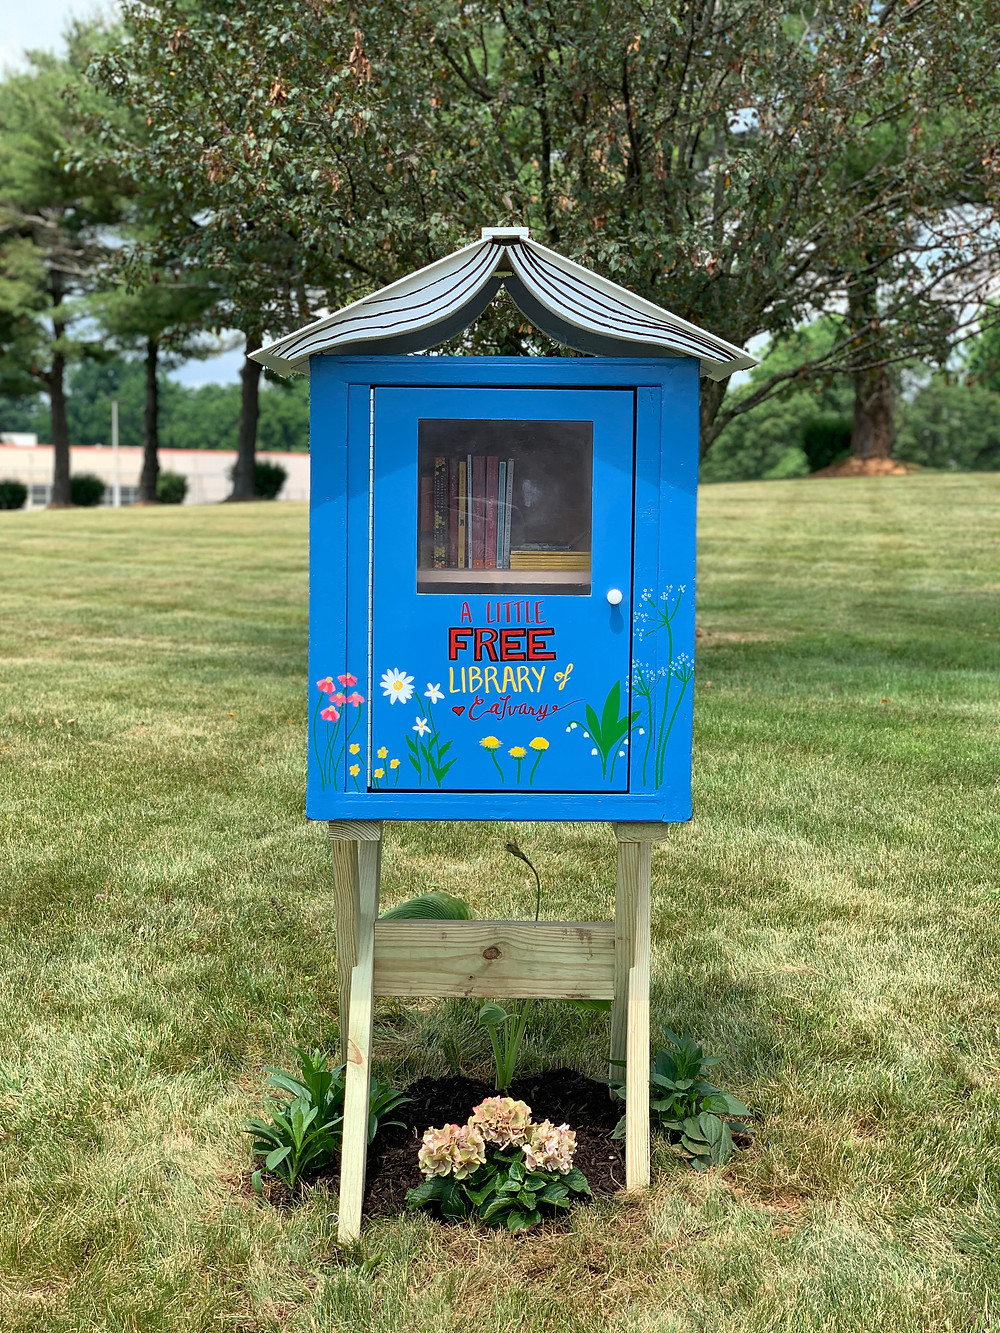 Are little free library:  A blue box topped by a decorative open book, with a clear window and handled  cupboard door to allow users to access our books.